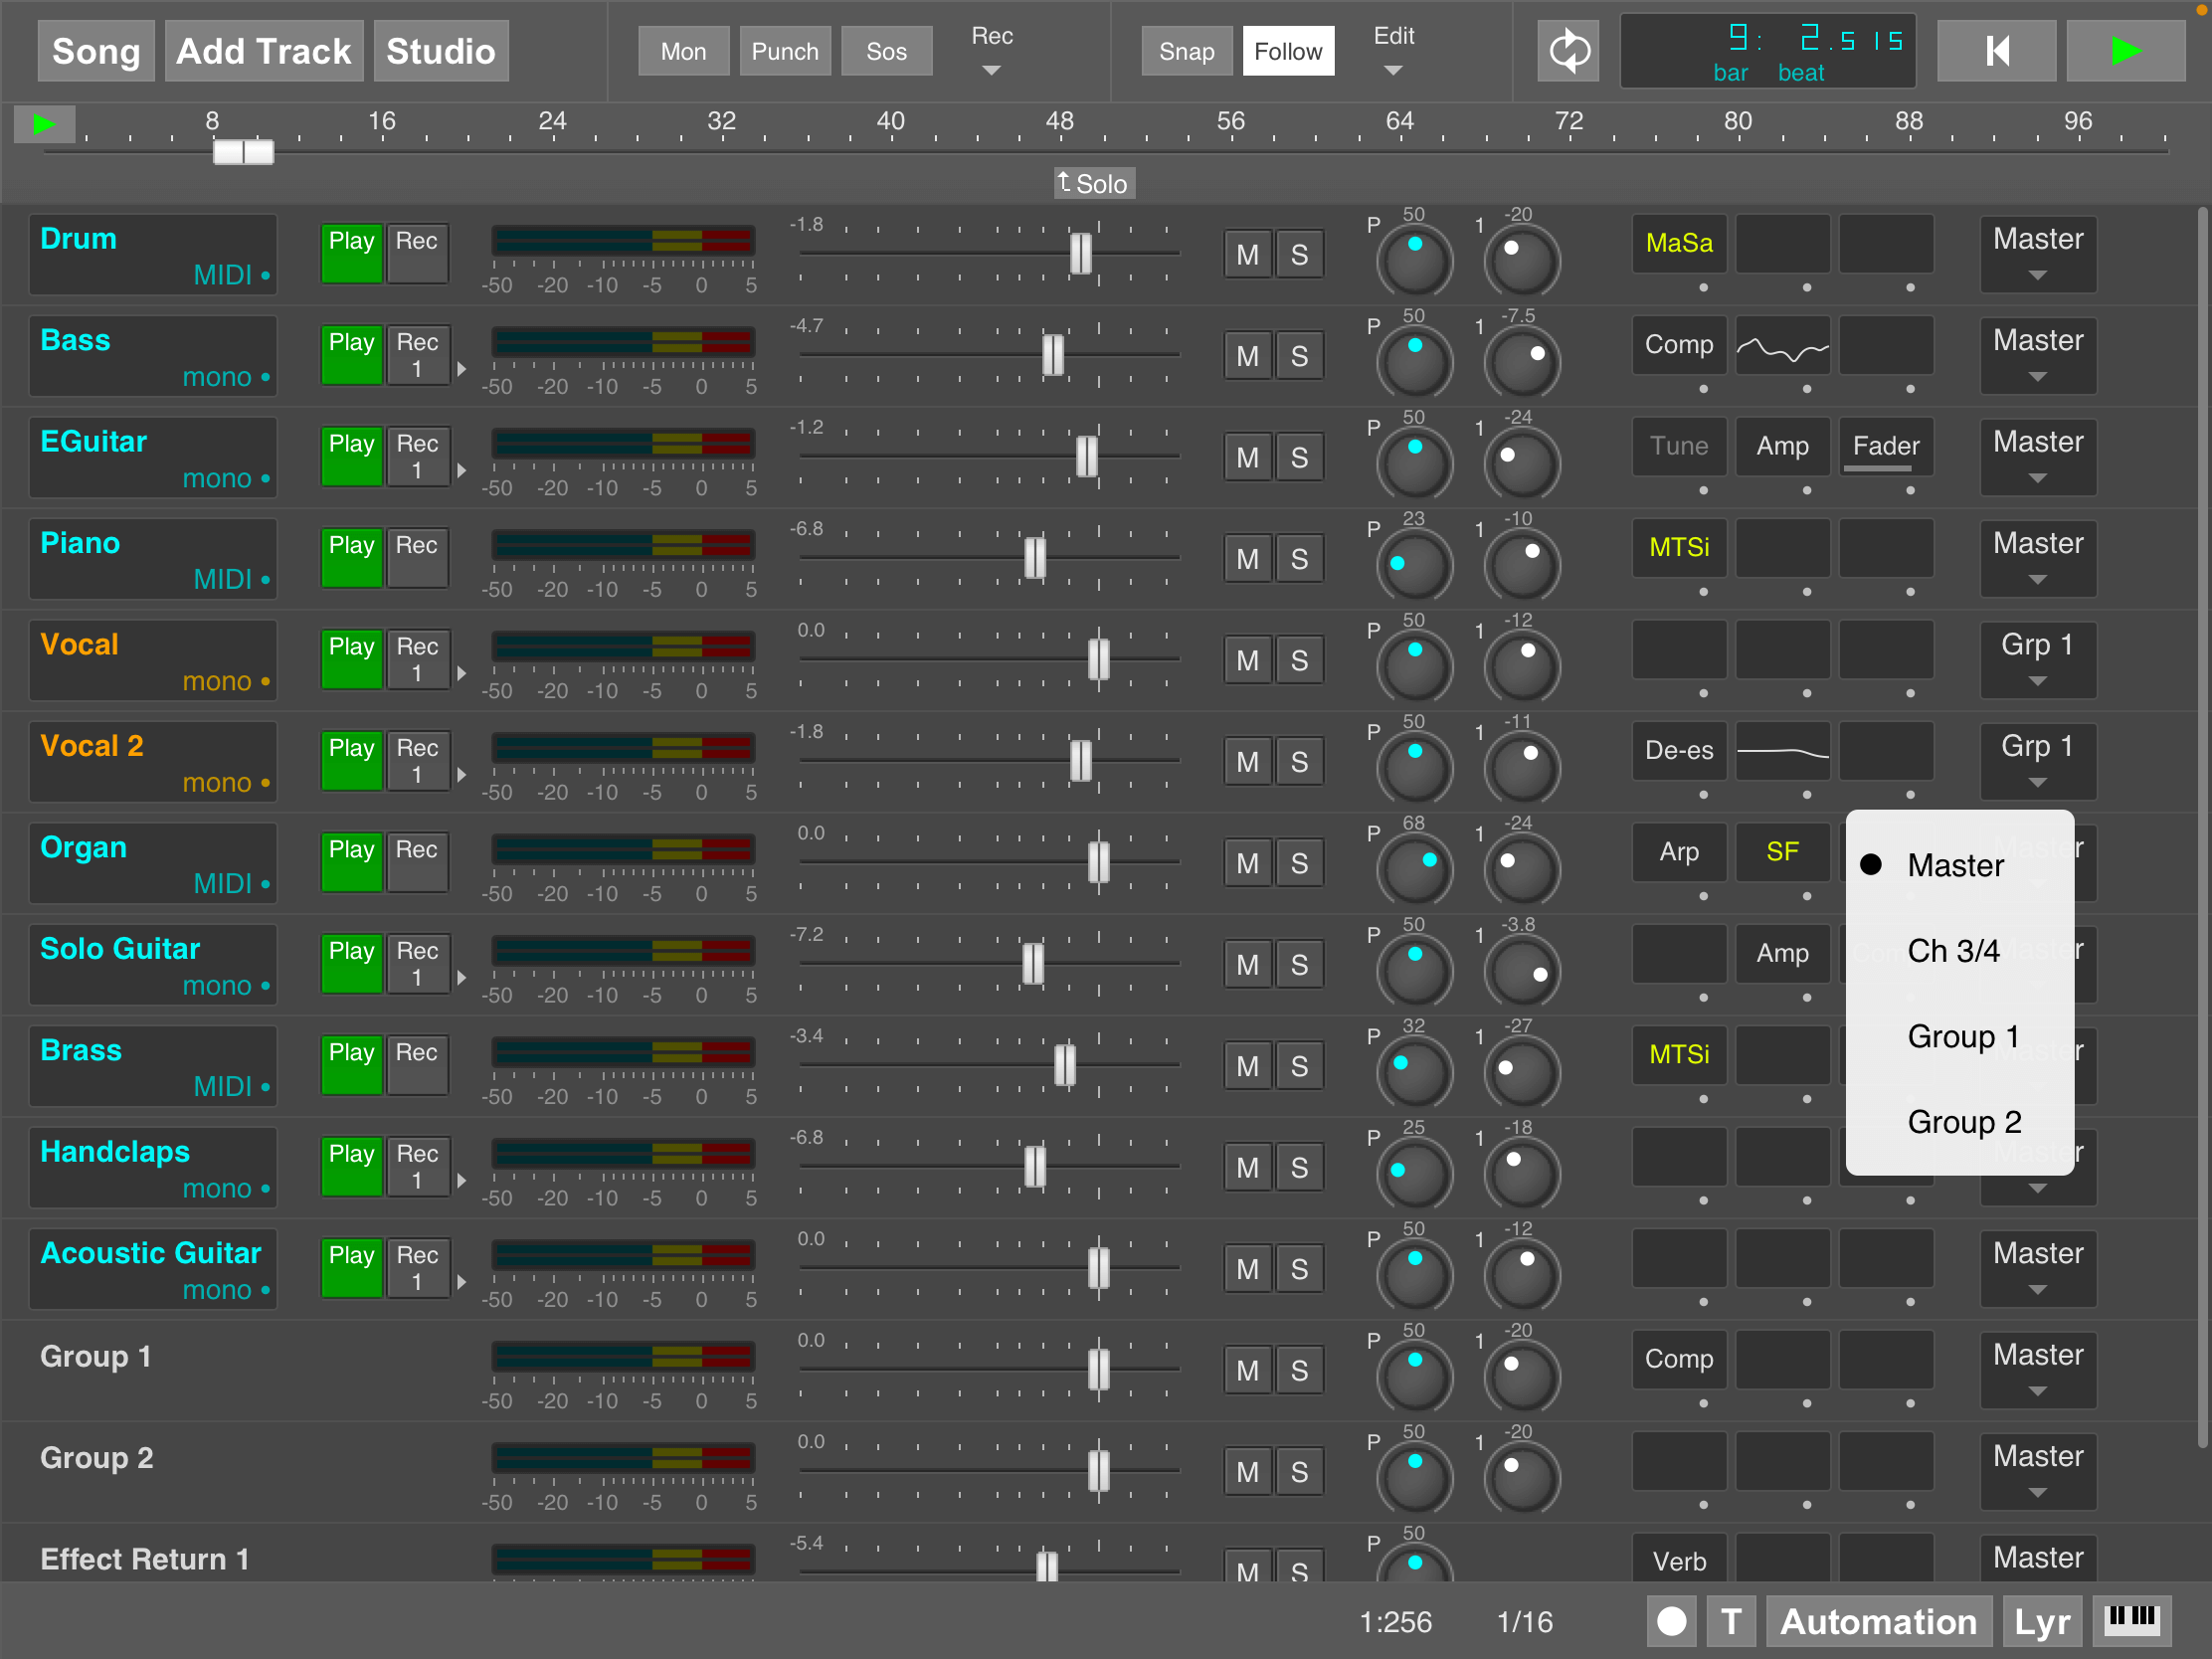 MultitrackStudio for iPad - Two Group sections and four analog outputs